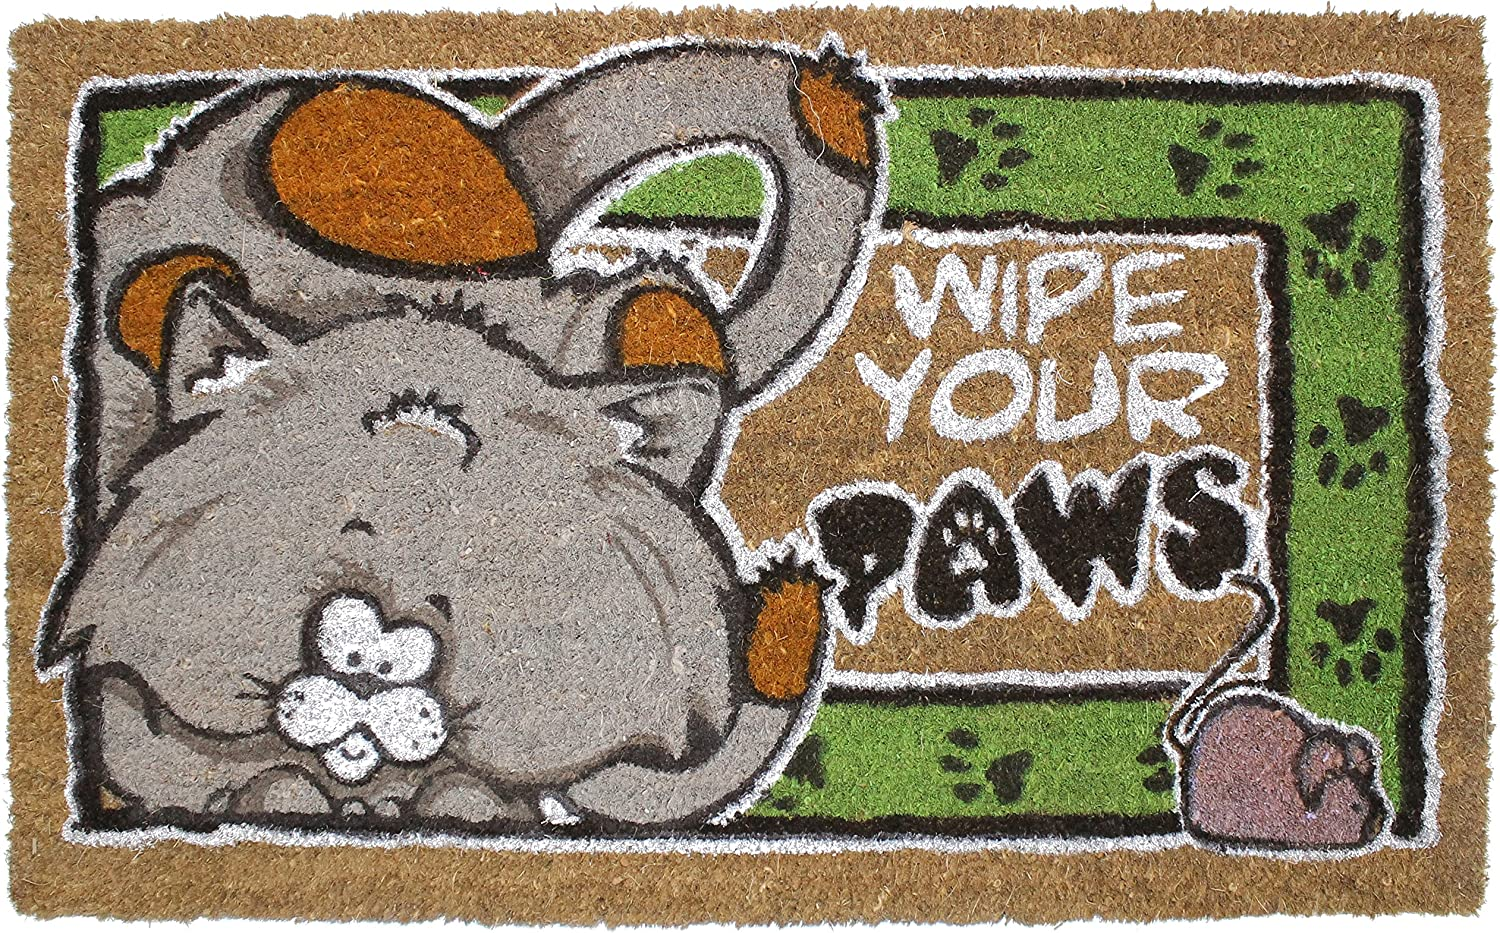 J&M Home Fashions Natural Coir Coco Fiber Non-Slip Outdoor/Indoor Doormat, 18x30, Wipe Your Cat Paws